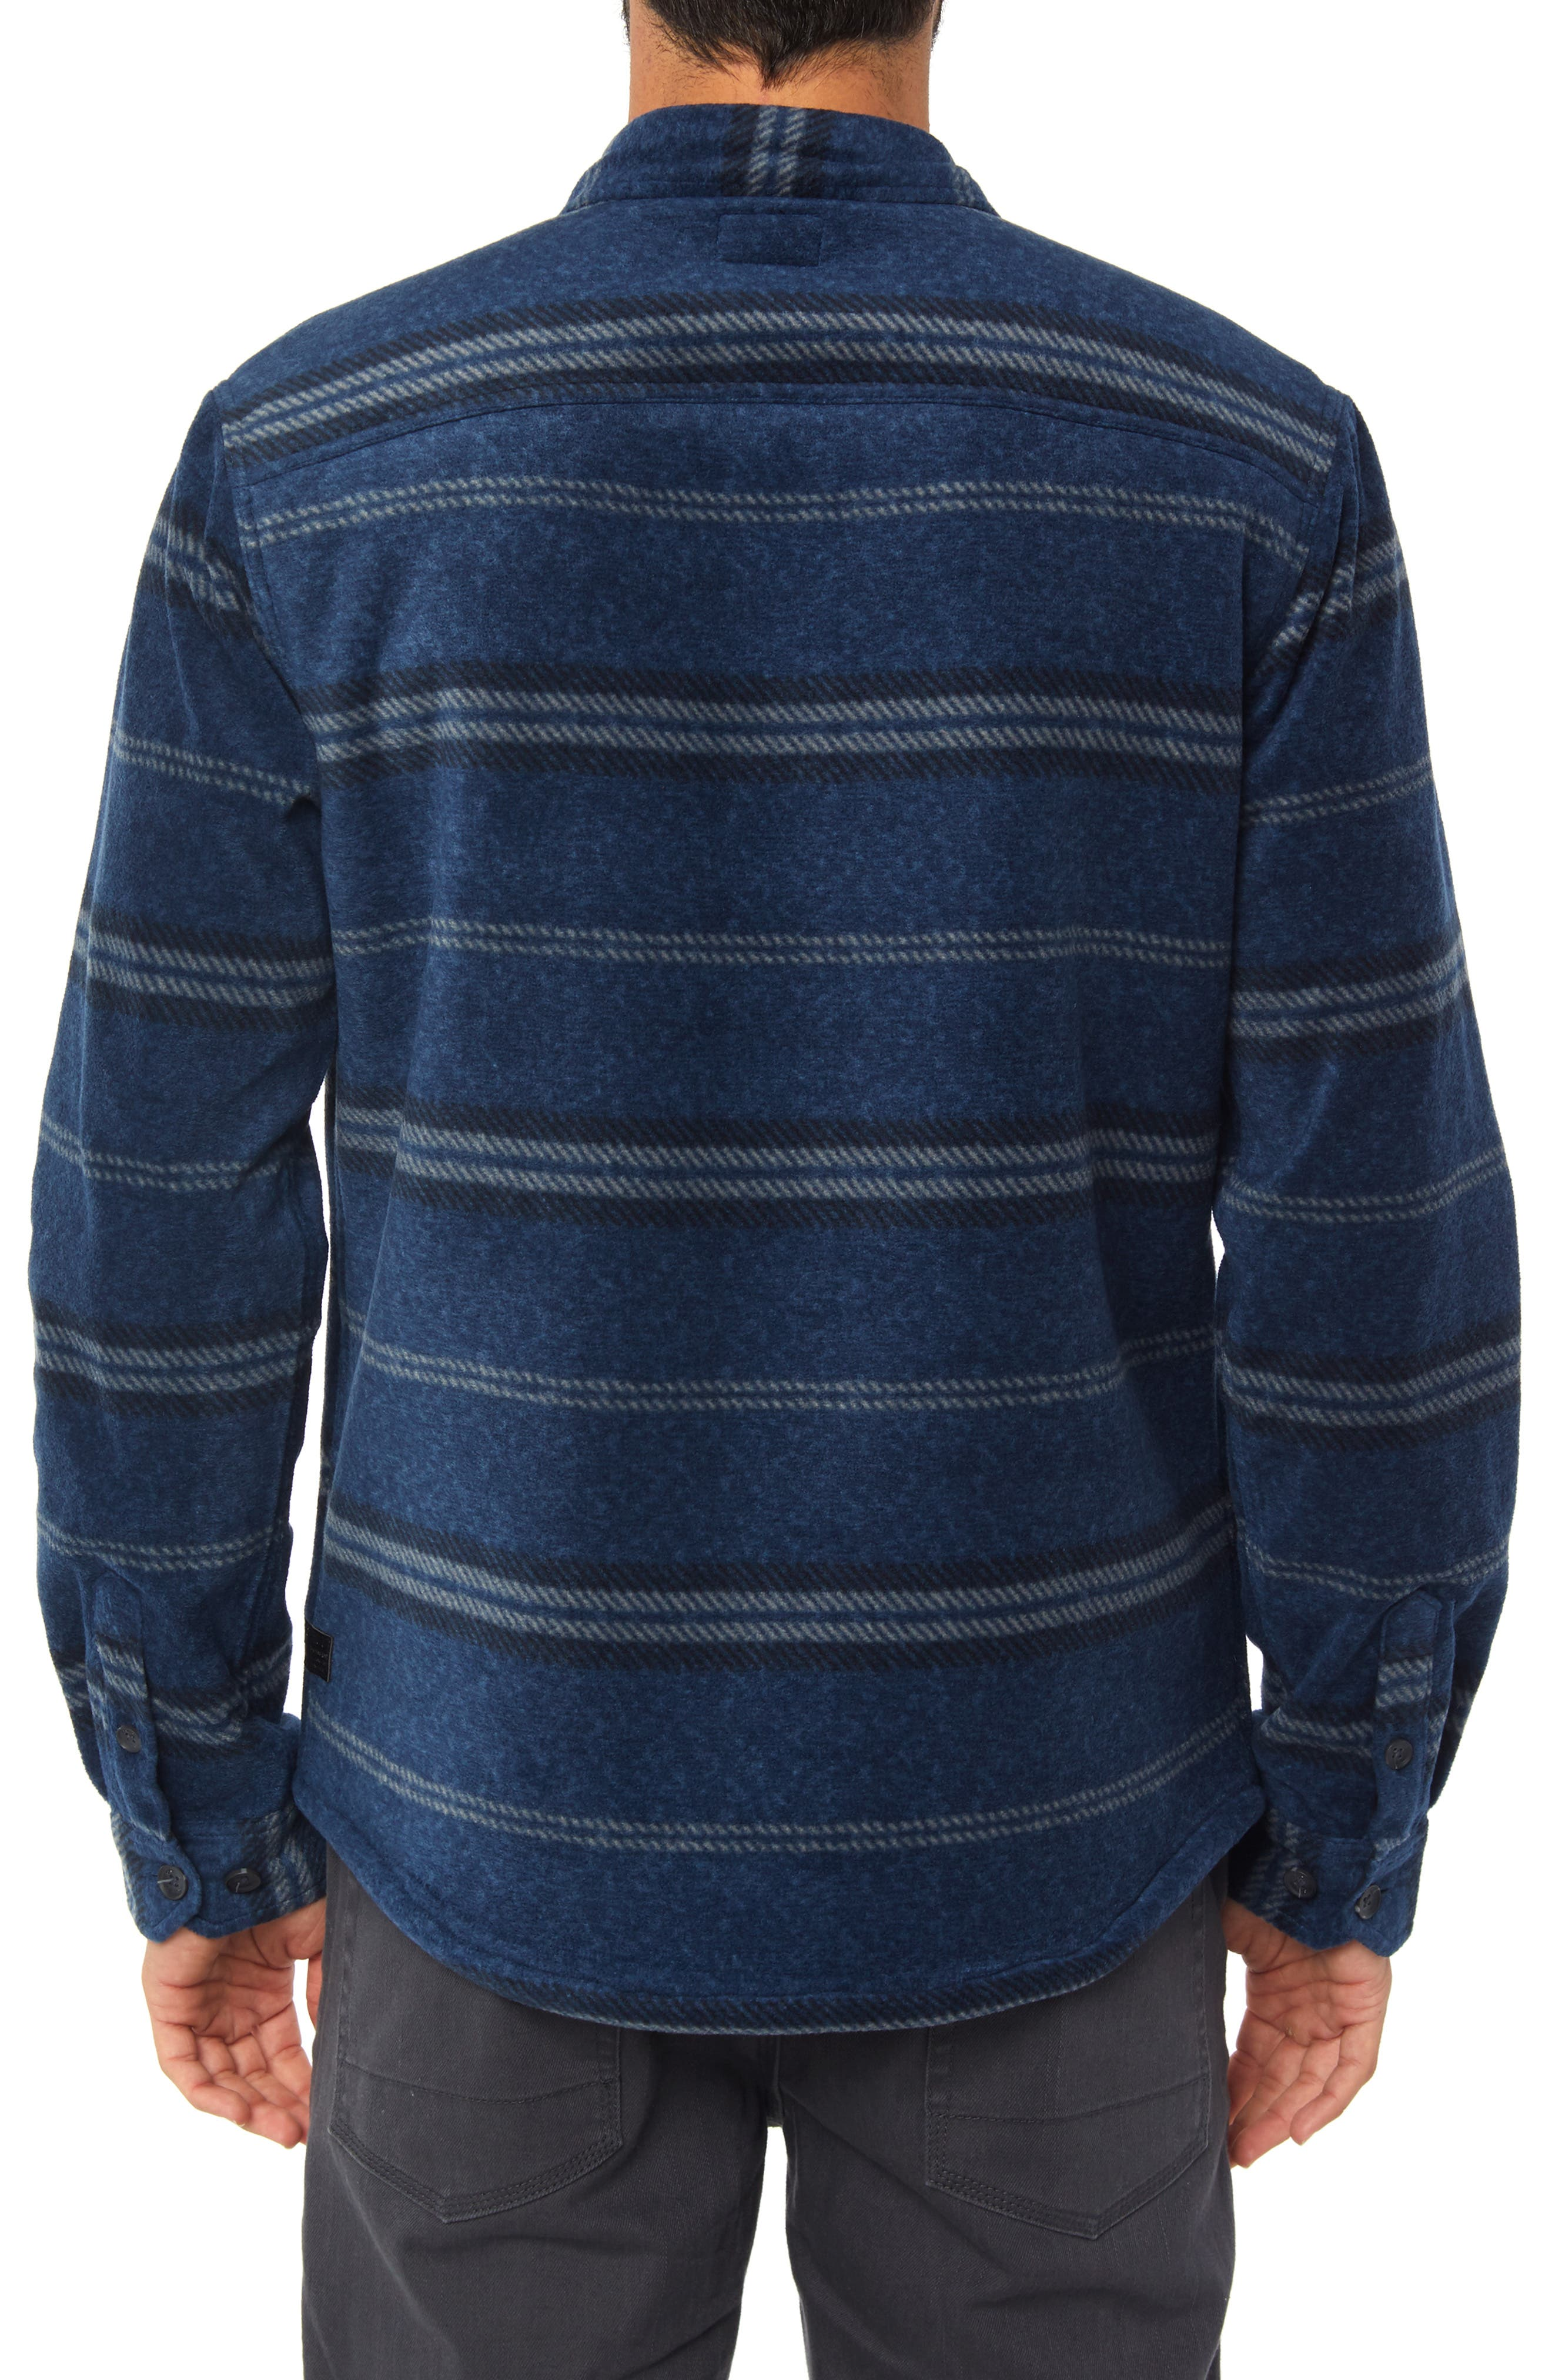 Glacier Fleece Lined Shirt Jacket,                             Alternate thumbnail 2, color,                             HEATHER NAVY